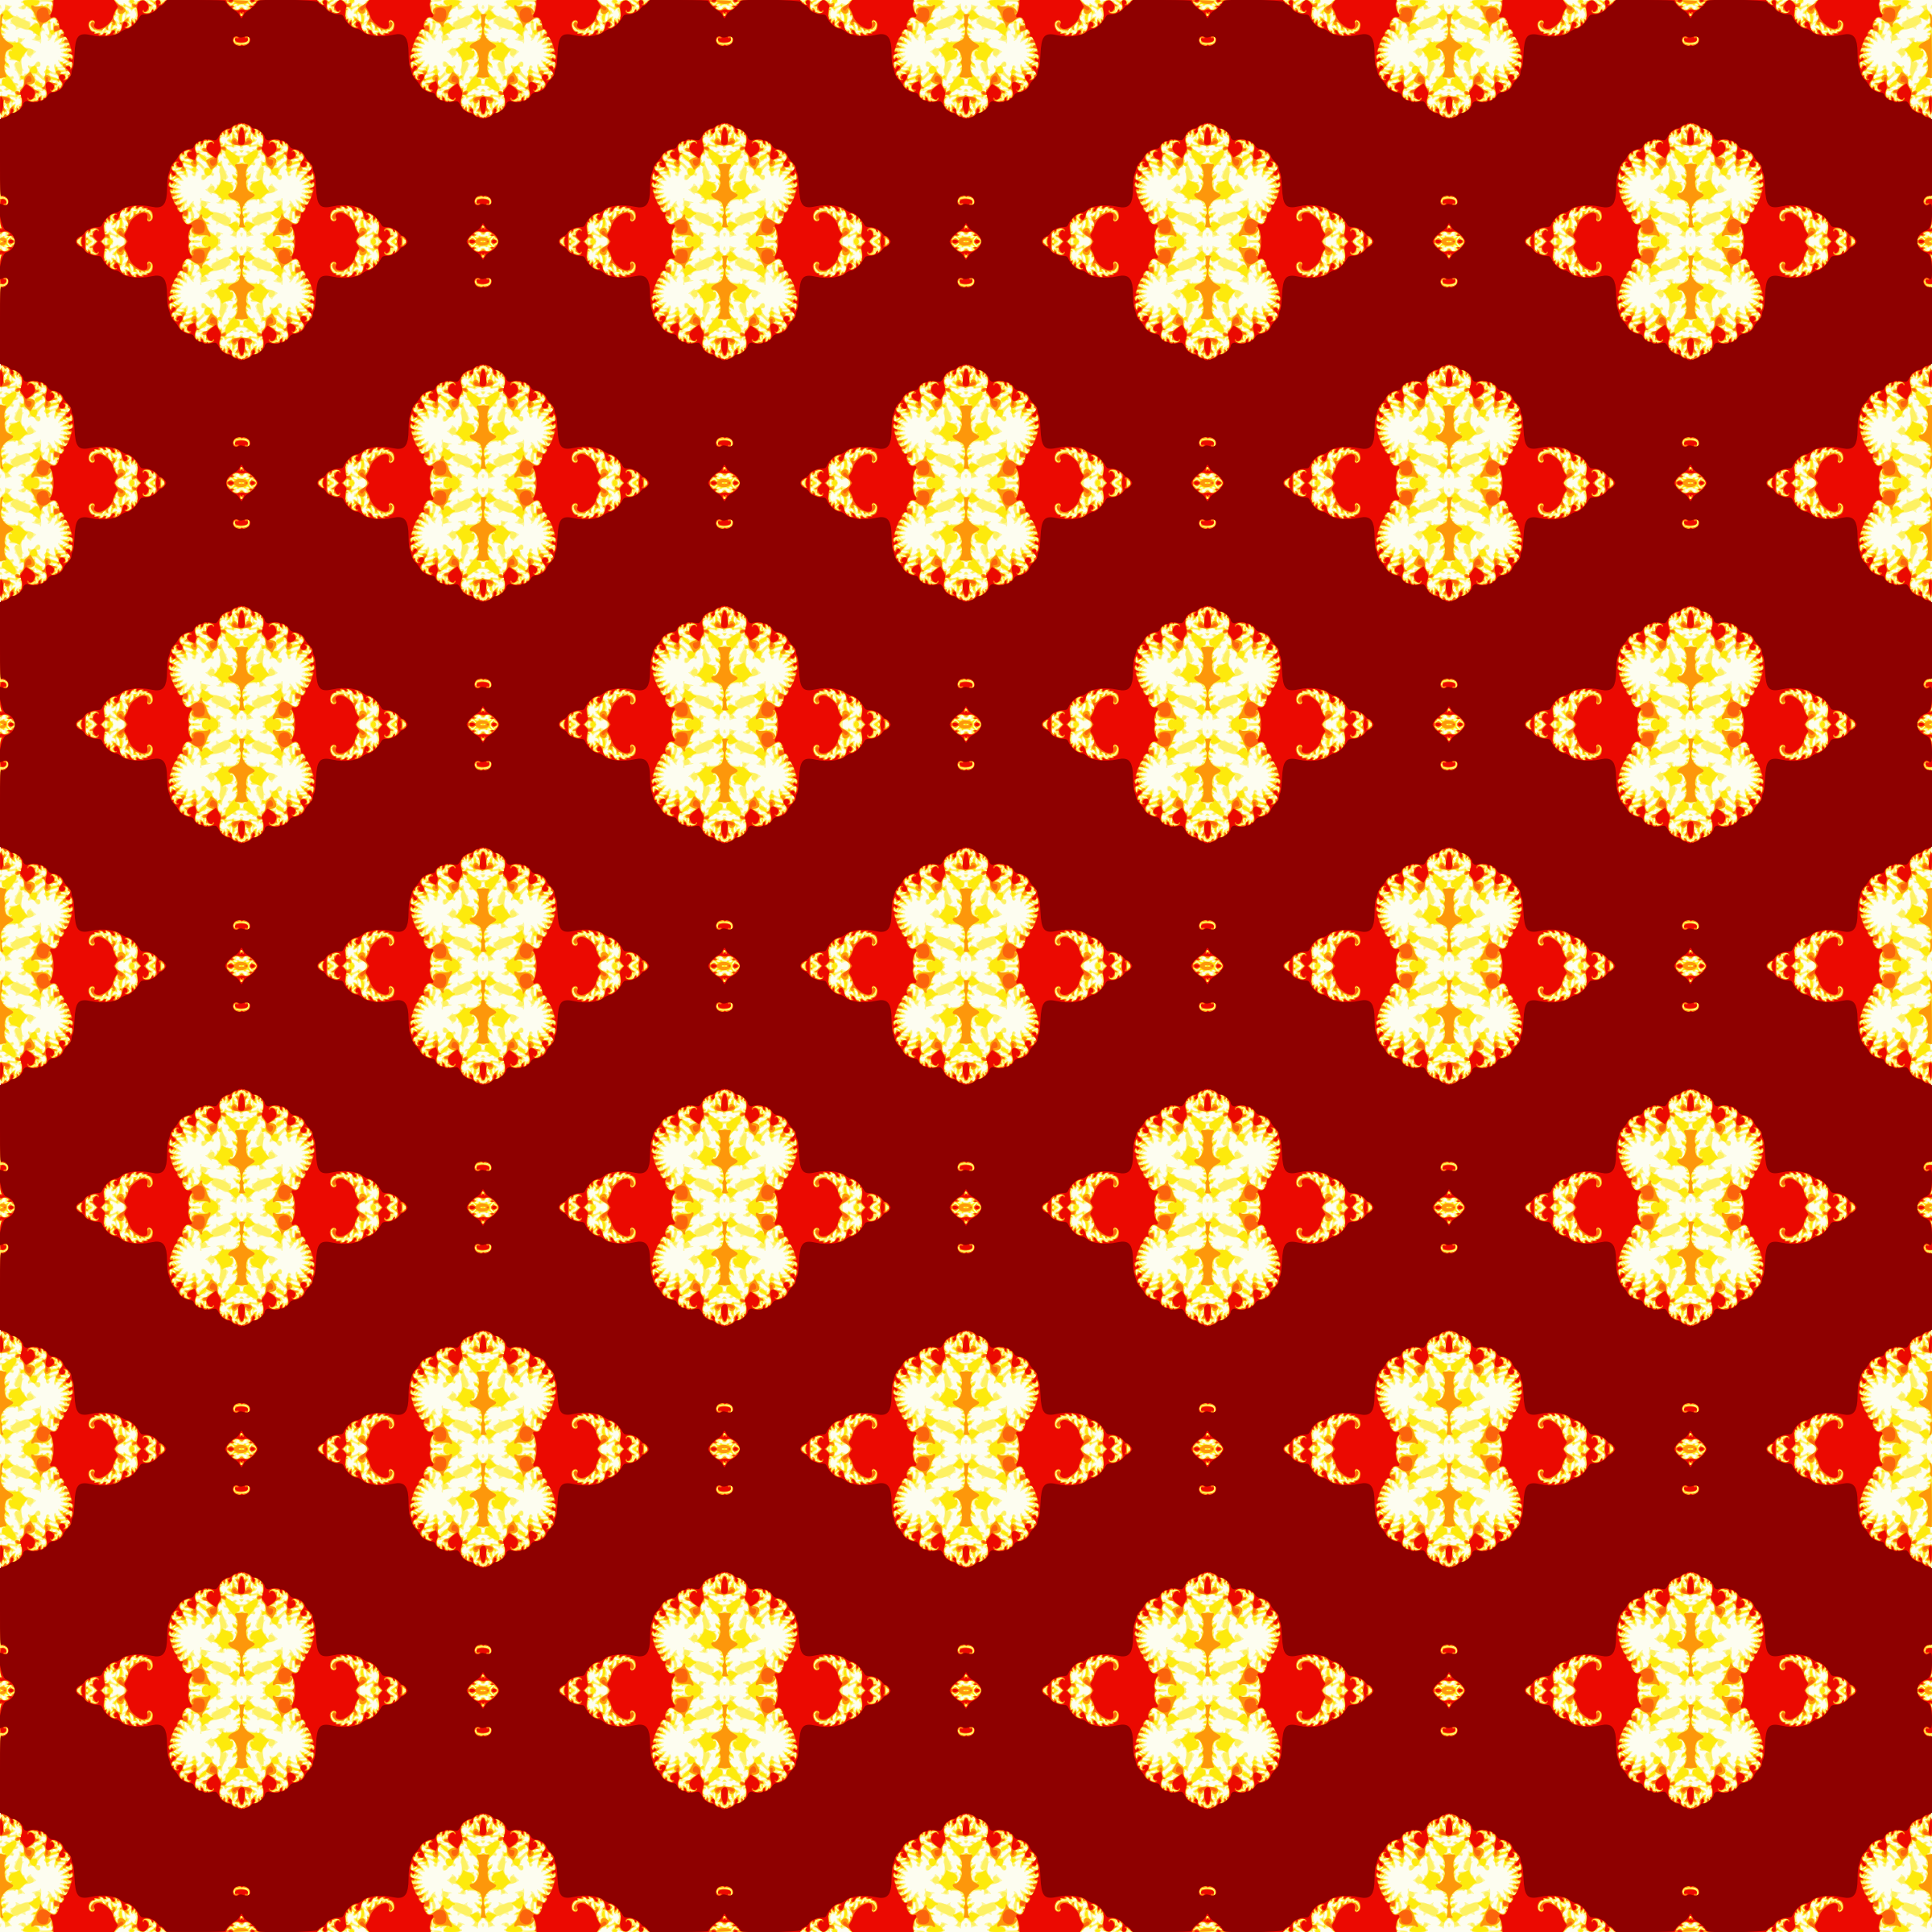 Background pattern 1 by Firkin